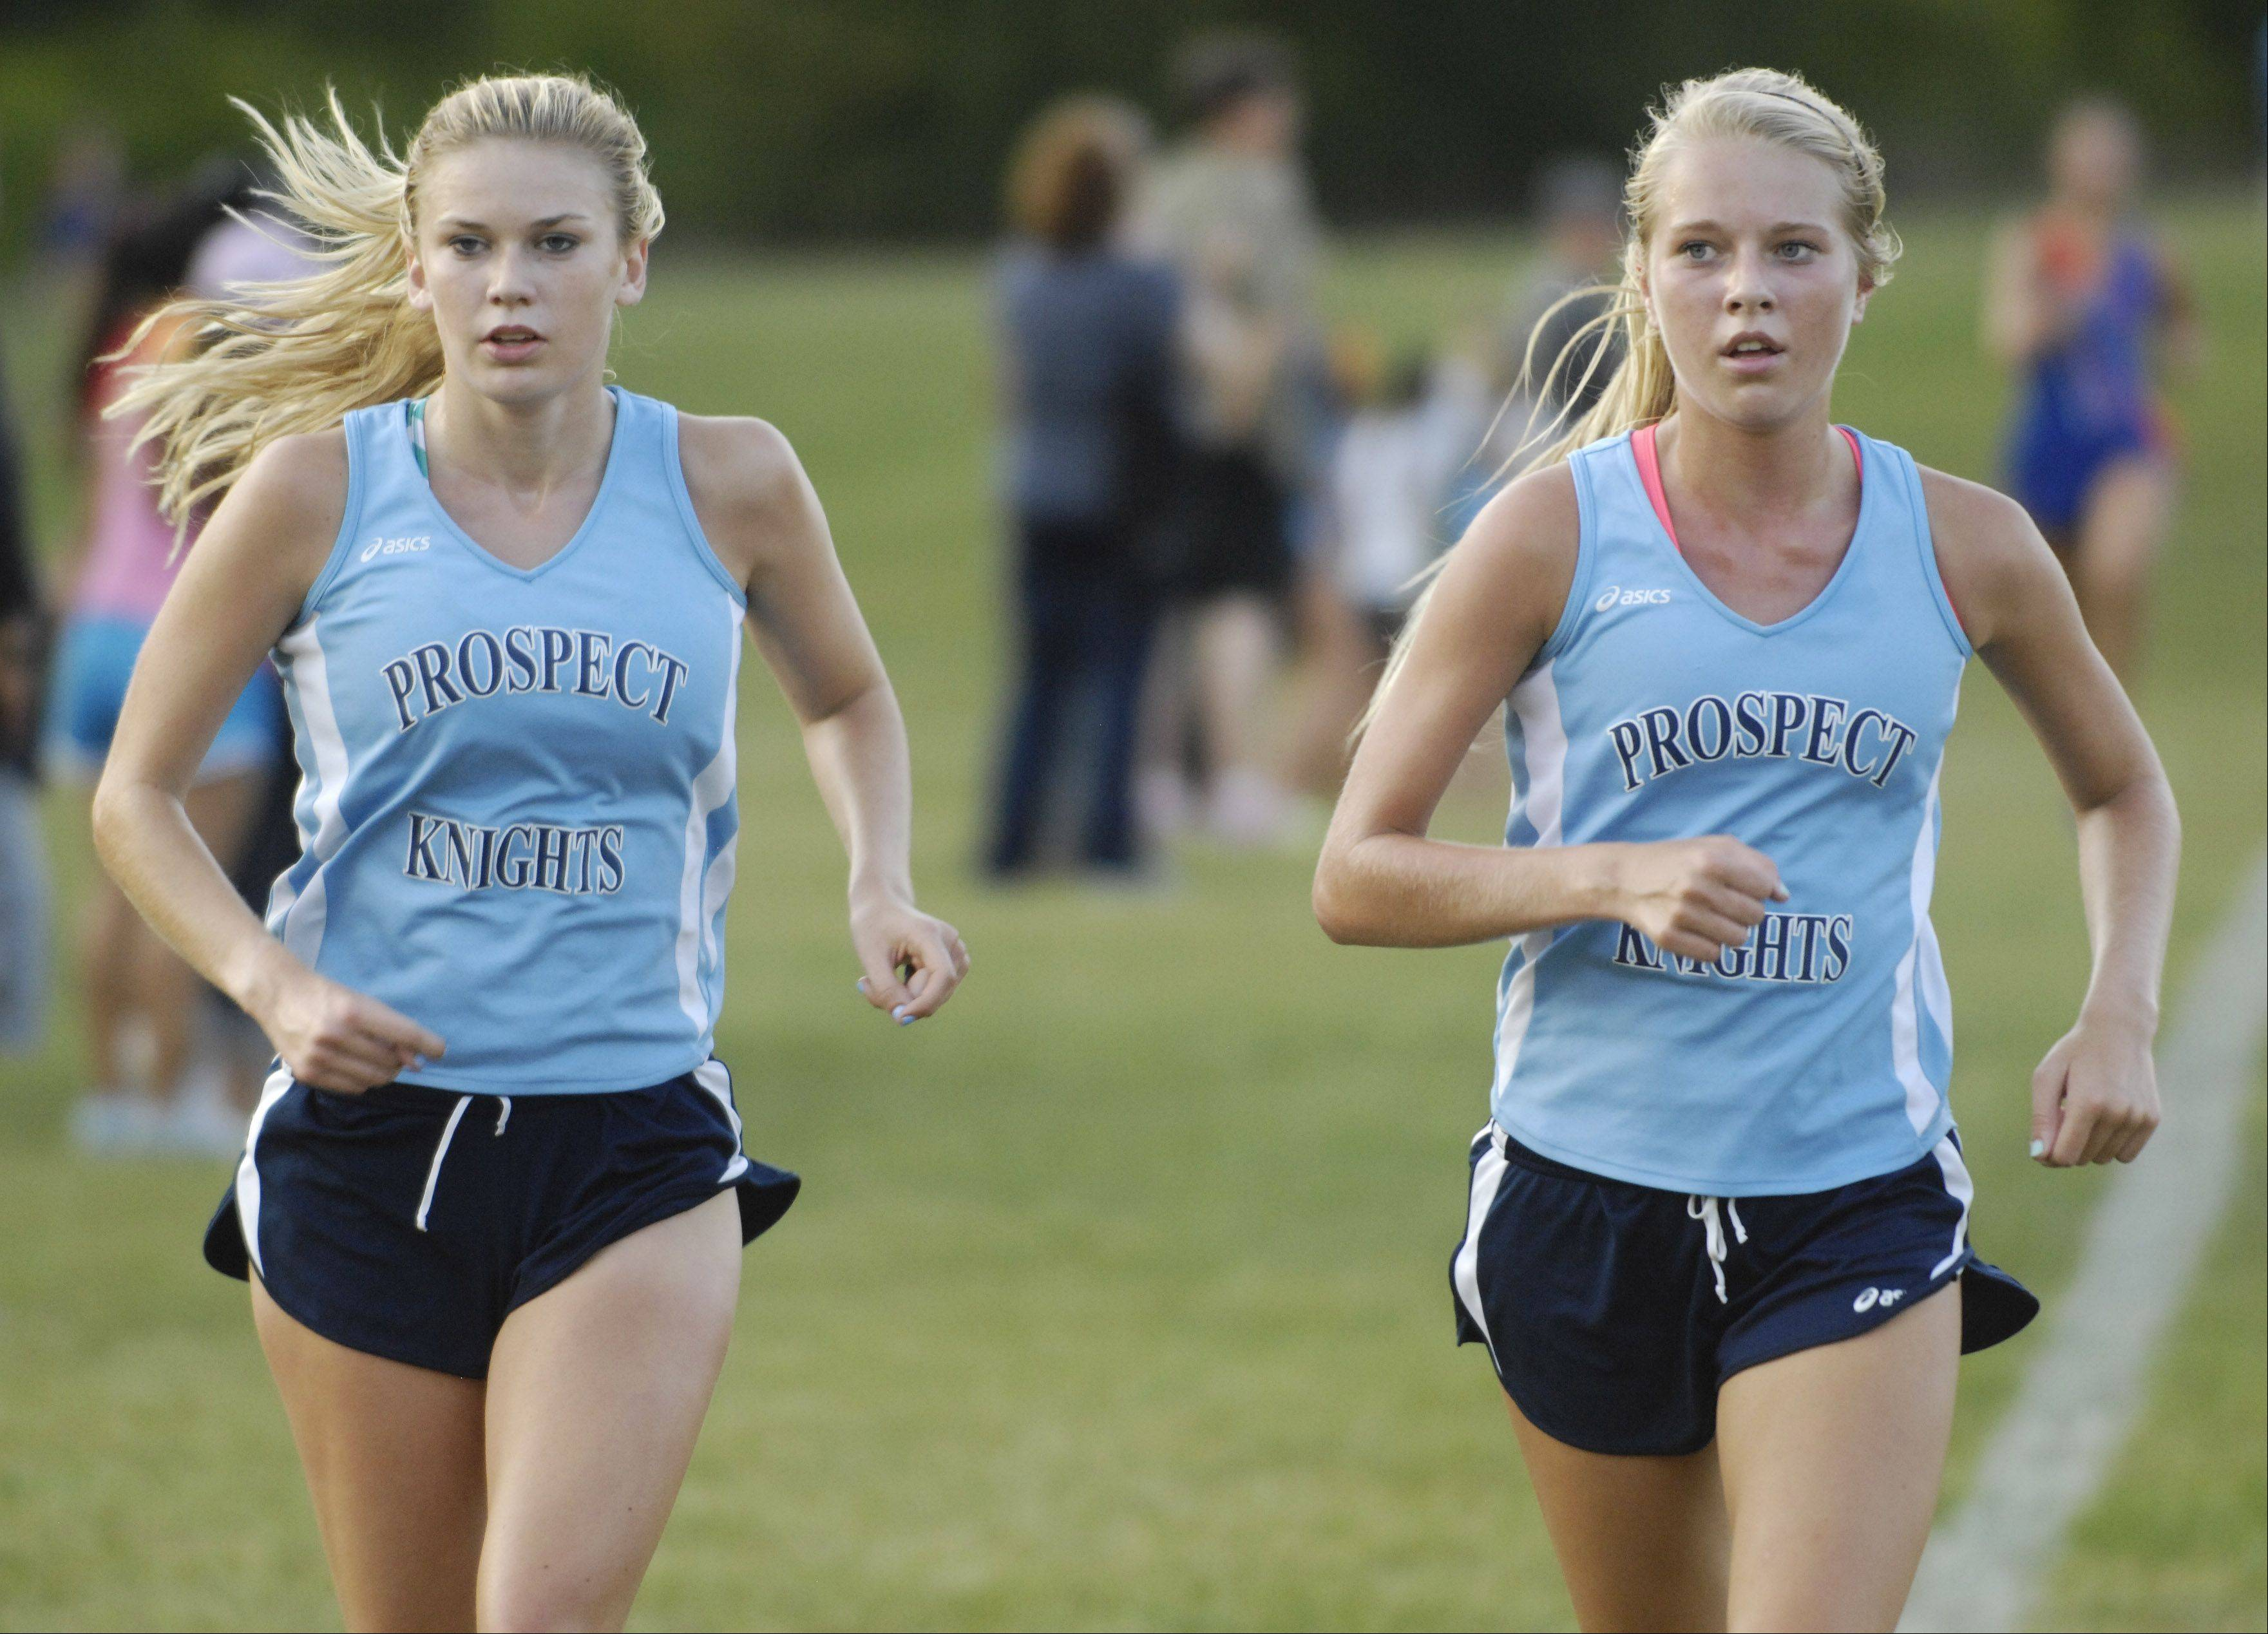 Prospect cross country runners Brooke Wolfe, left, and Lauren Poplowski are aiming for conclude their standout careers with a state trophy.